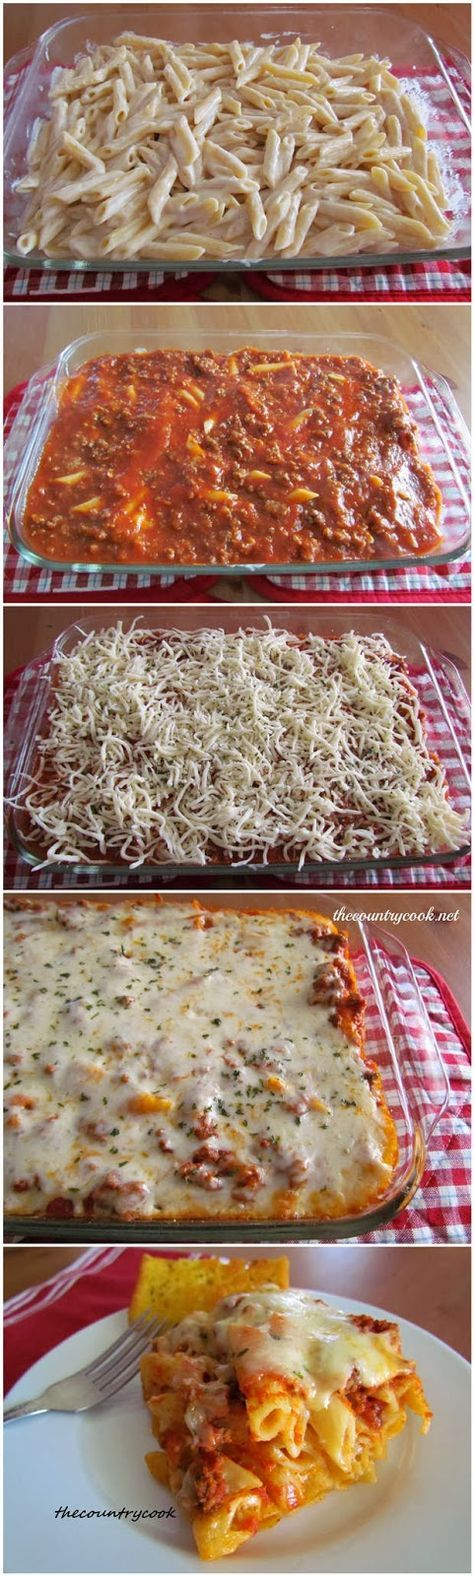 "Easy Baked Ziti recipe from The Country Cook- ""The easiest baked ziti recipe ever!"" - ""My family loved it....especially the kids!"""